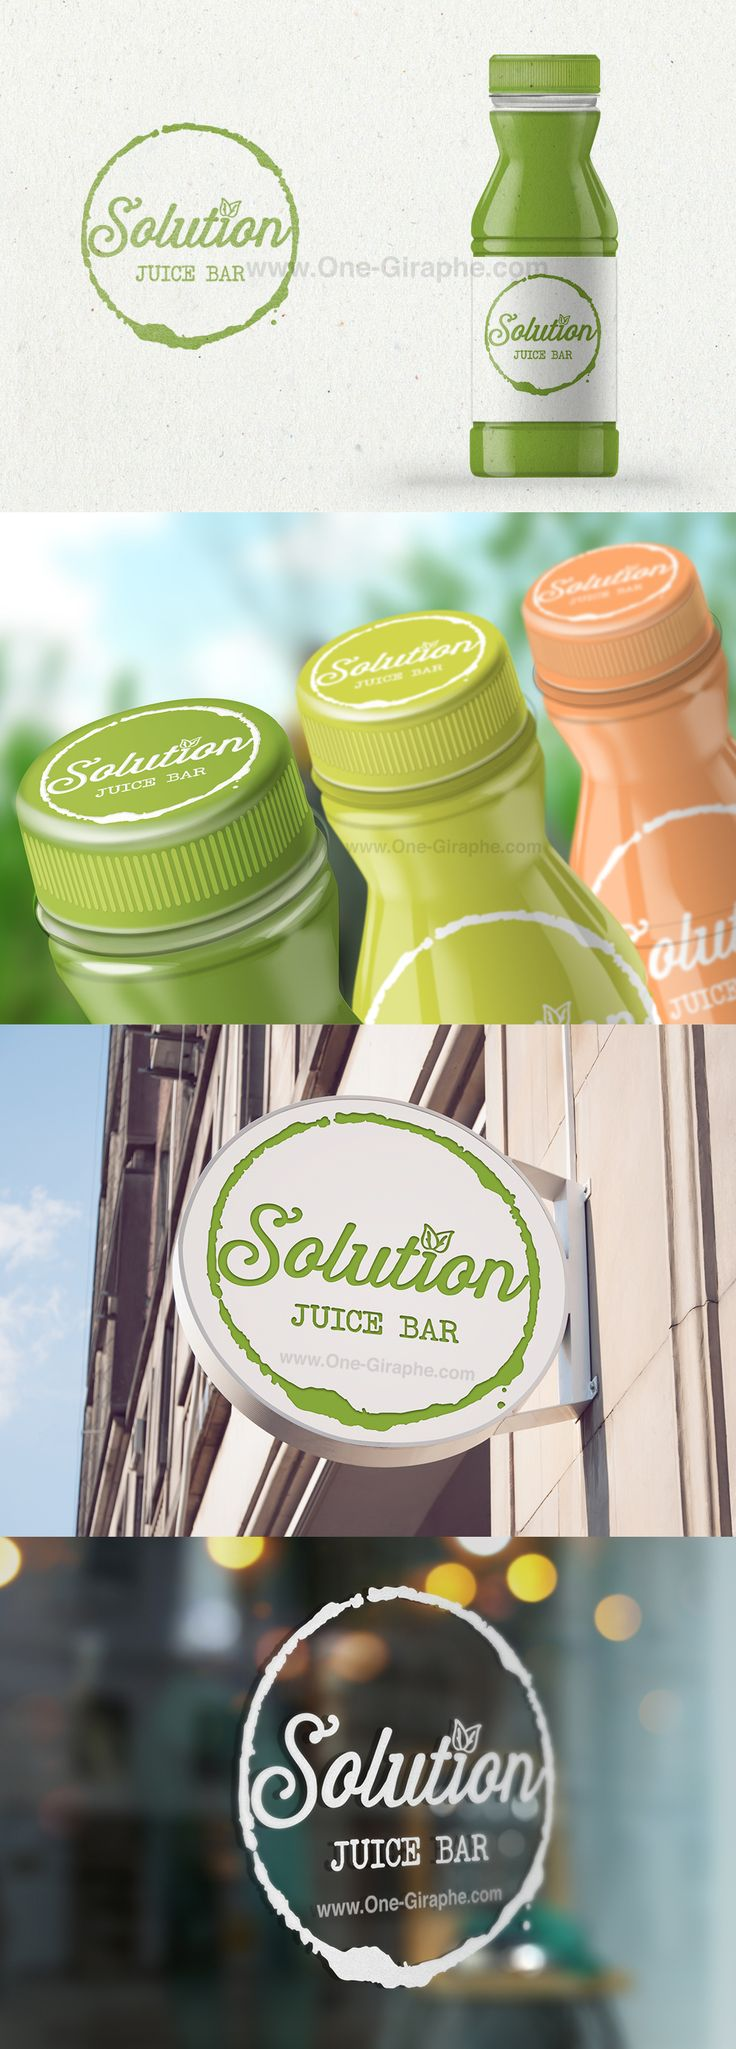 #logo #design #sale #logostore #stocklogos #logopond #behance #brand #identity #brandidentity #graphic #graphicdesign #designer #gold #classic #juice #green #eco #bio #bar #packaging #bottle Another cool client: Solution - Juice Bar, located in Stavanger, Norway http://one-giraphe.com/prev.php?c=123